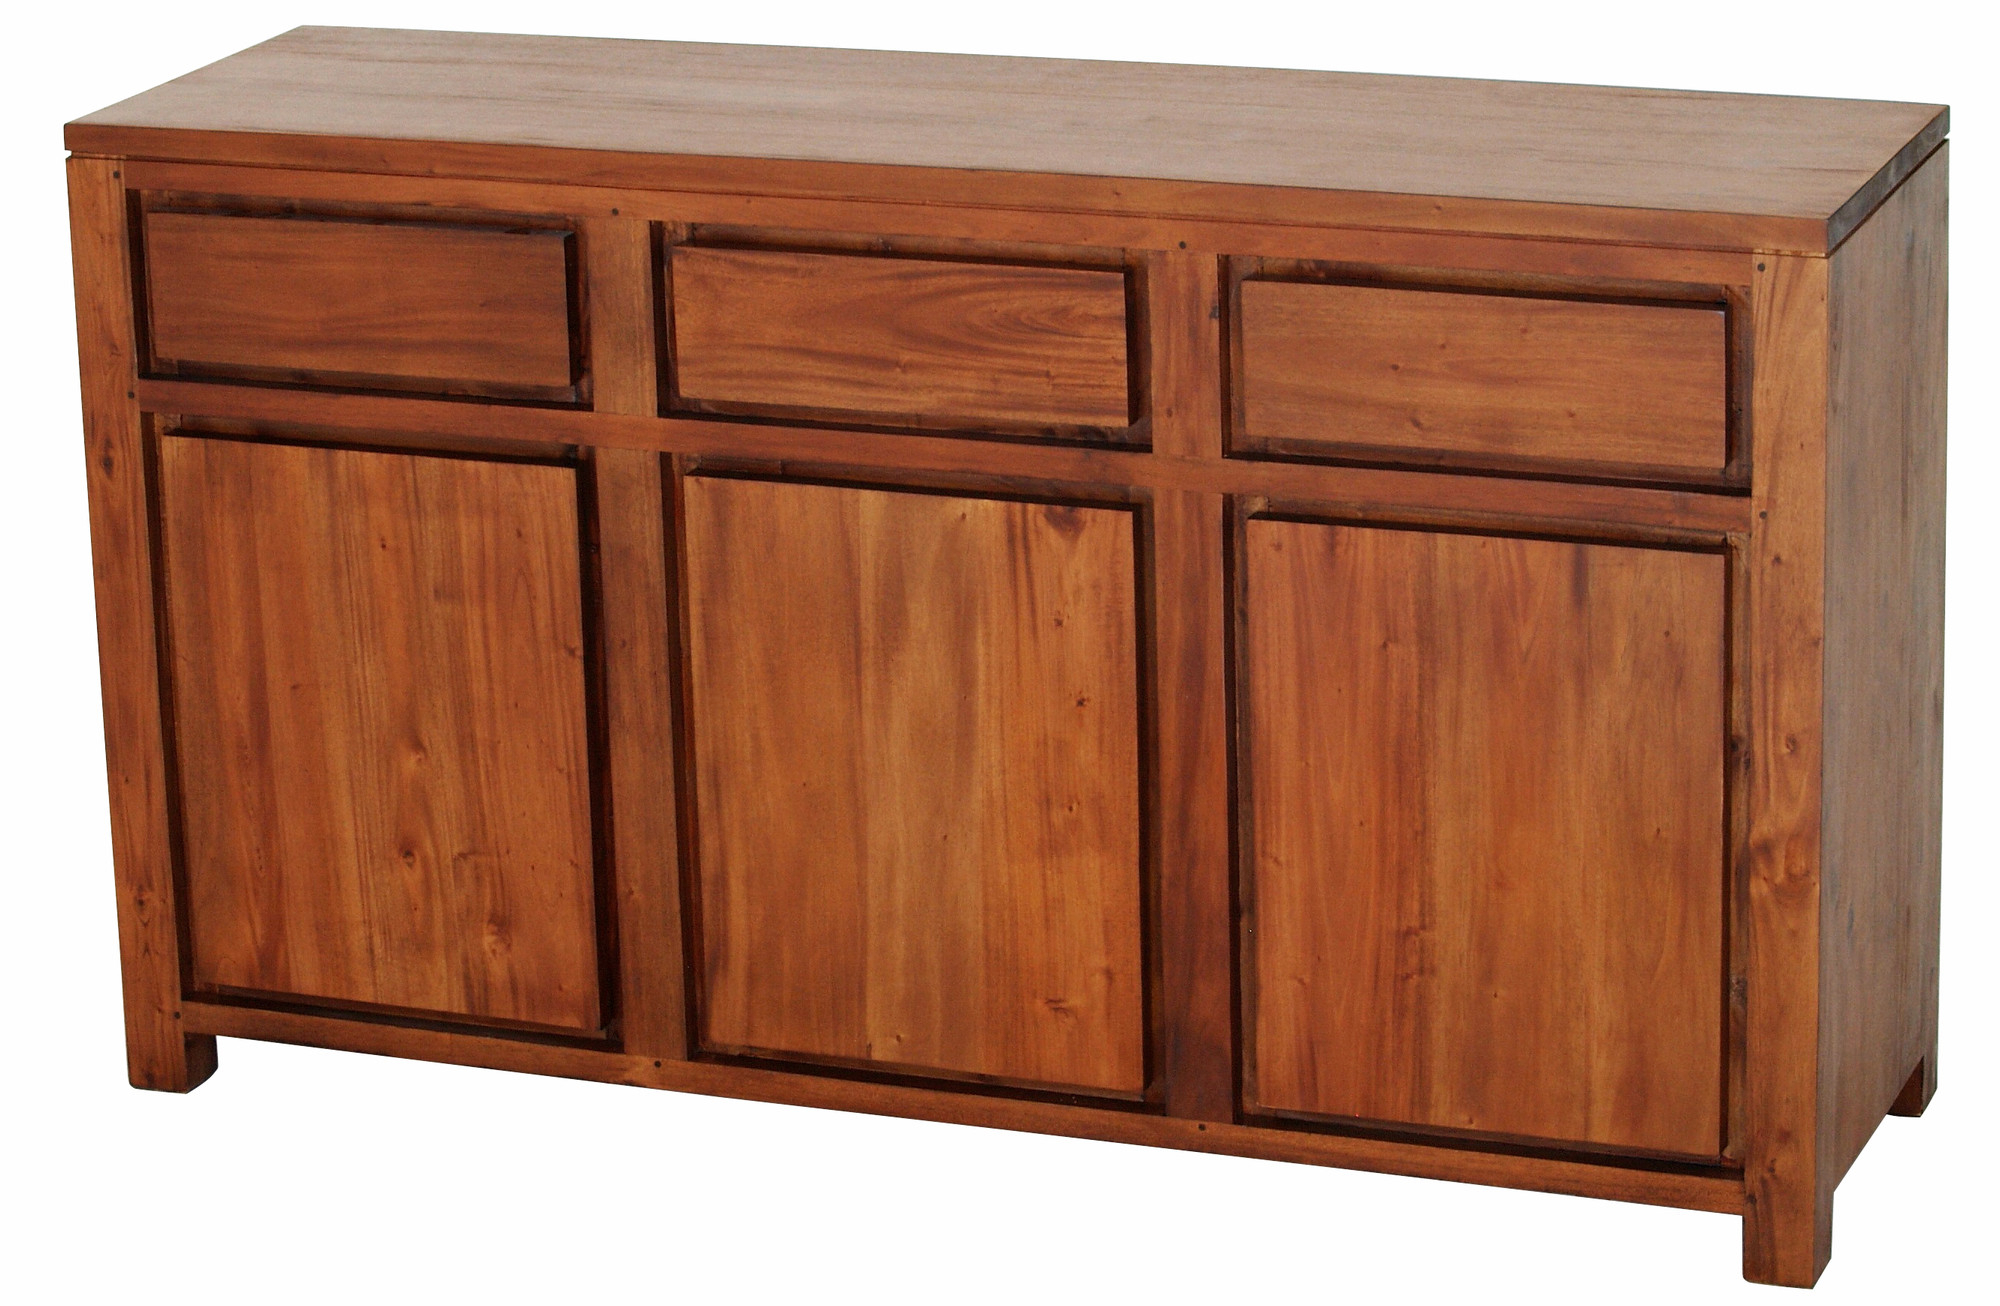 Nicolette Belgium 3 Drawer Buffet Within 3 Drawer Storage Buffets (View 18 of 20)